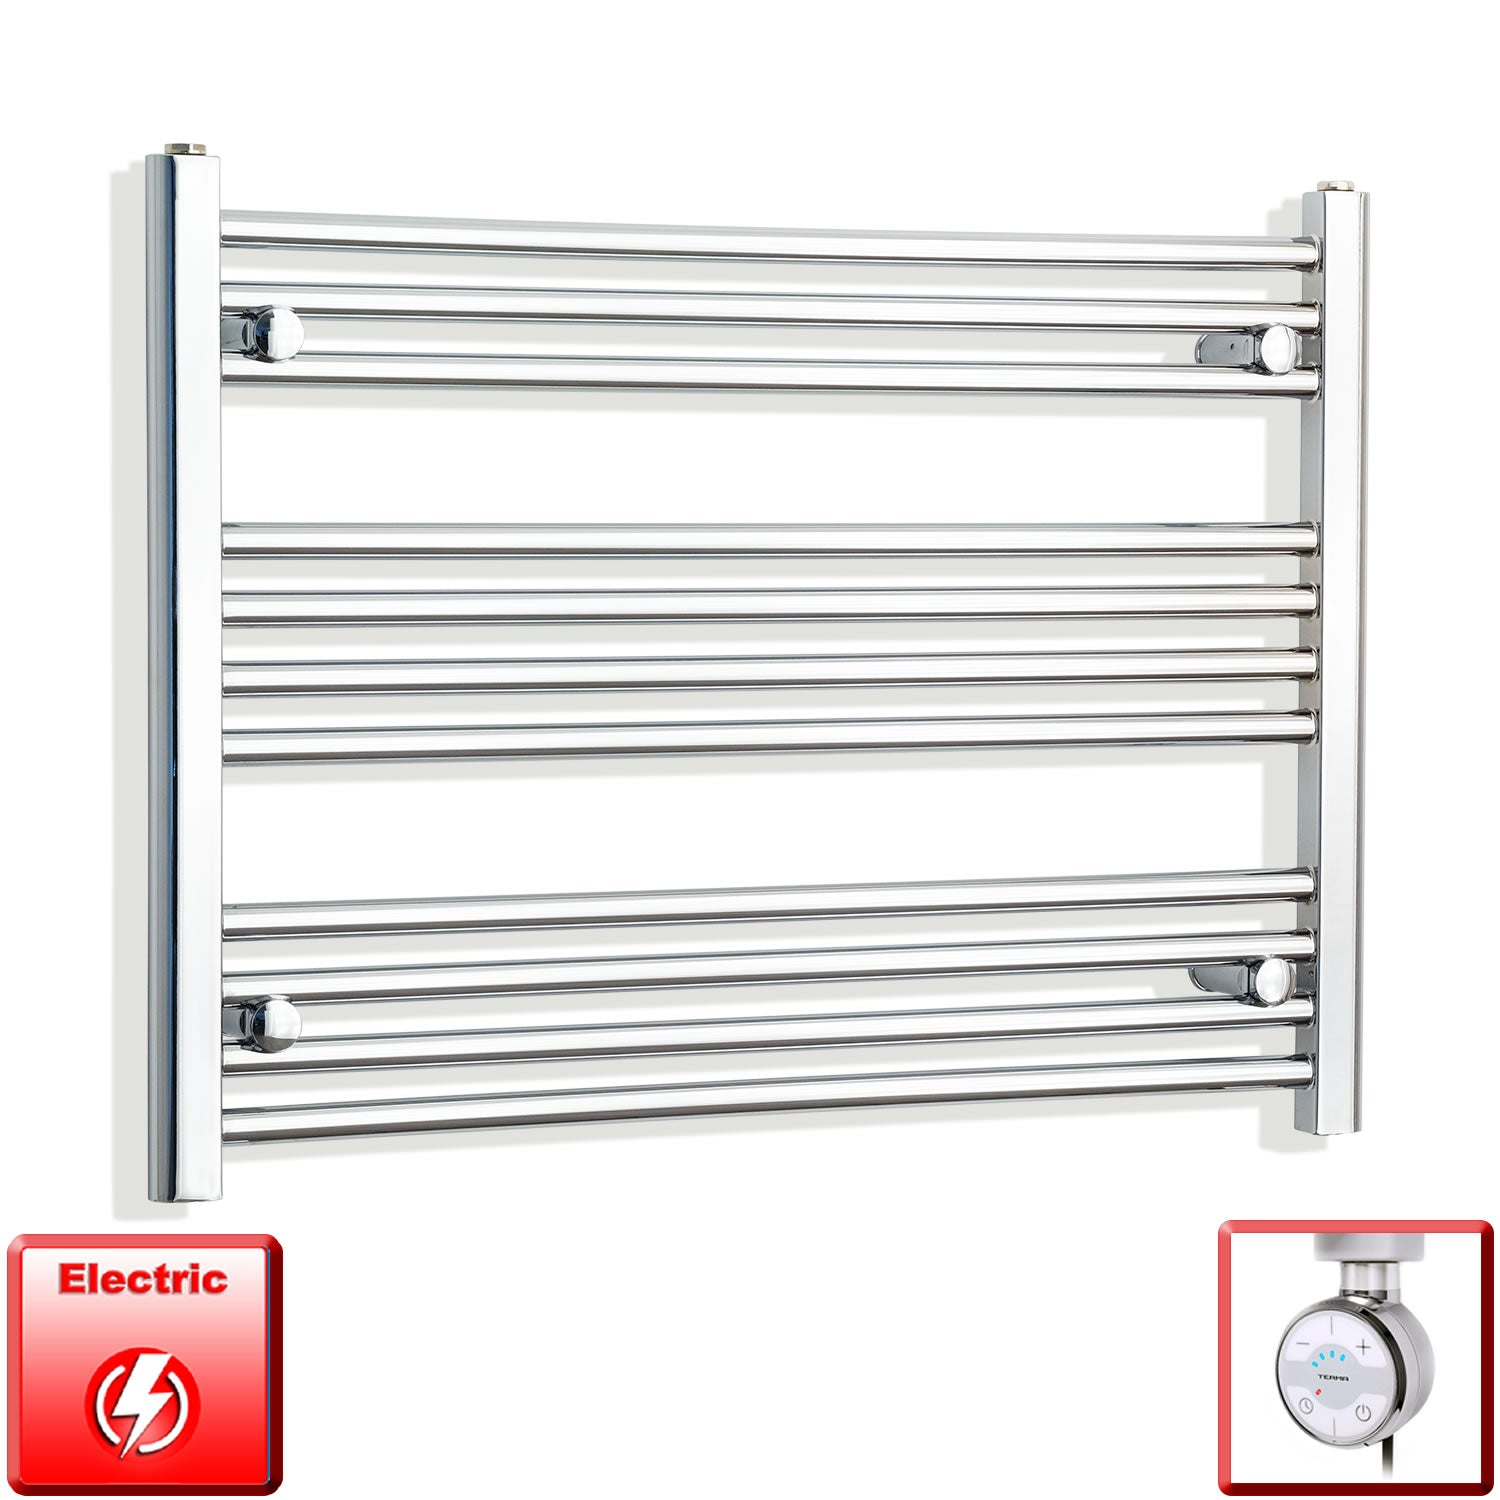 700mm Wide 600mm High Pre-Filled Chrome Electric Towel Rail Radiator With Thermostatic MOA Element